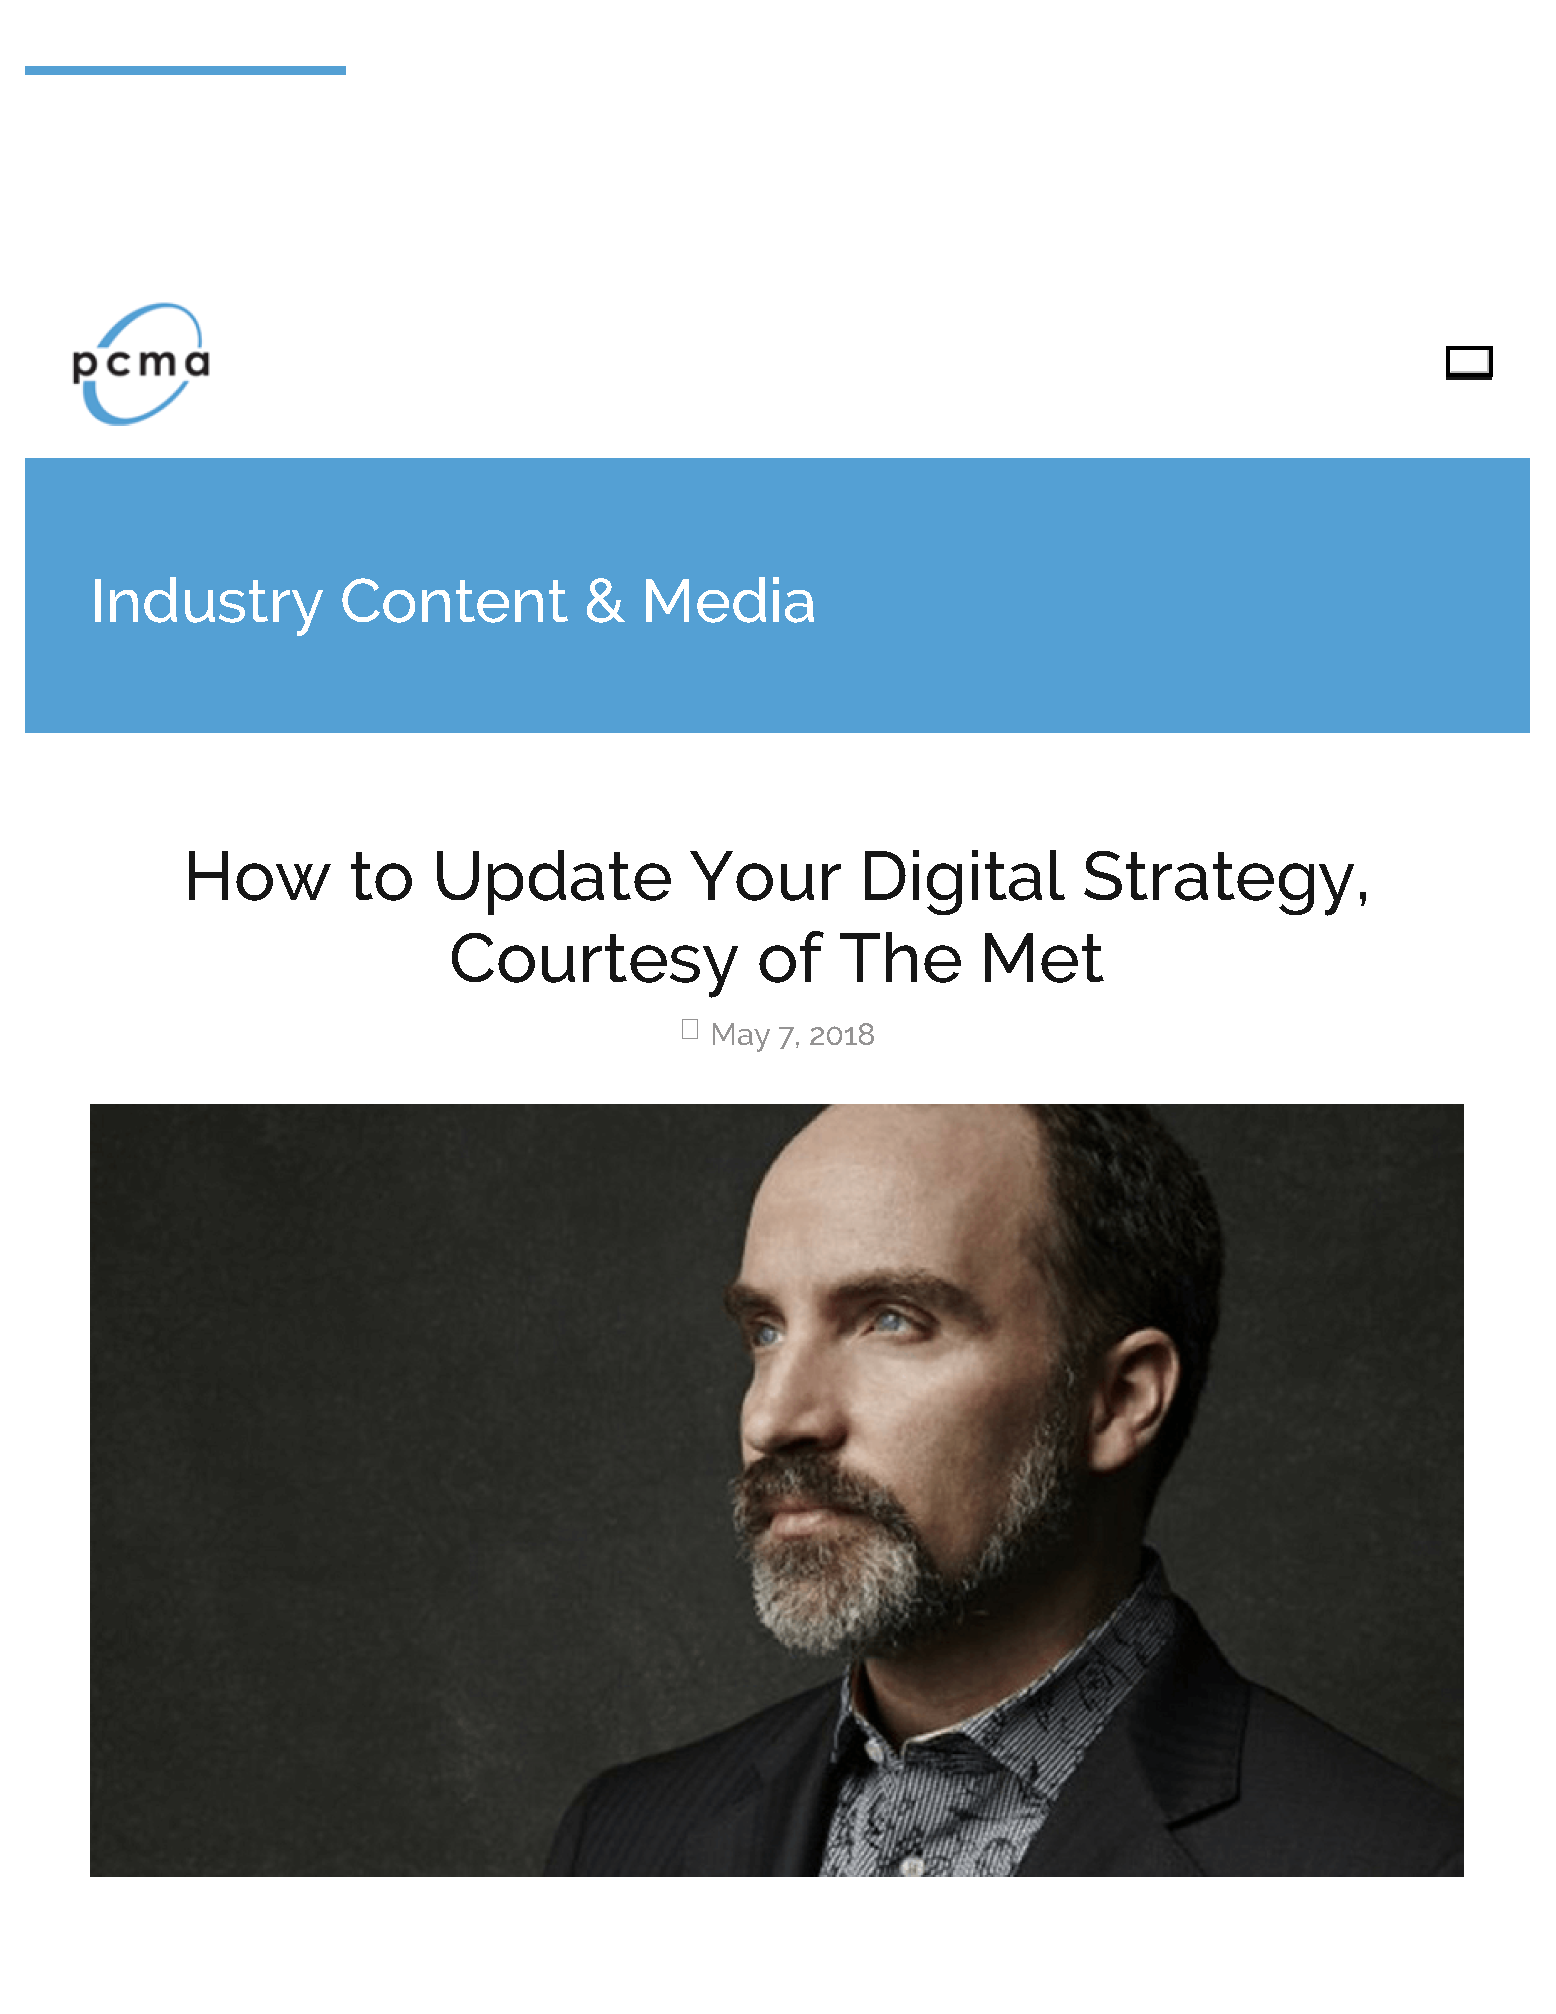 How to Update Your Digital Strategy, Courtesy of The Met - PCMA_Page_1.png